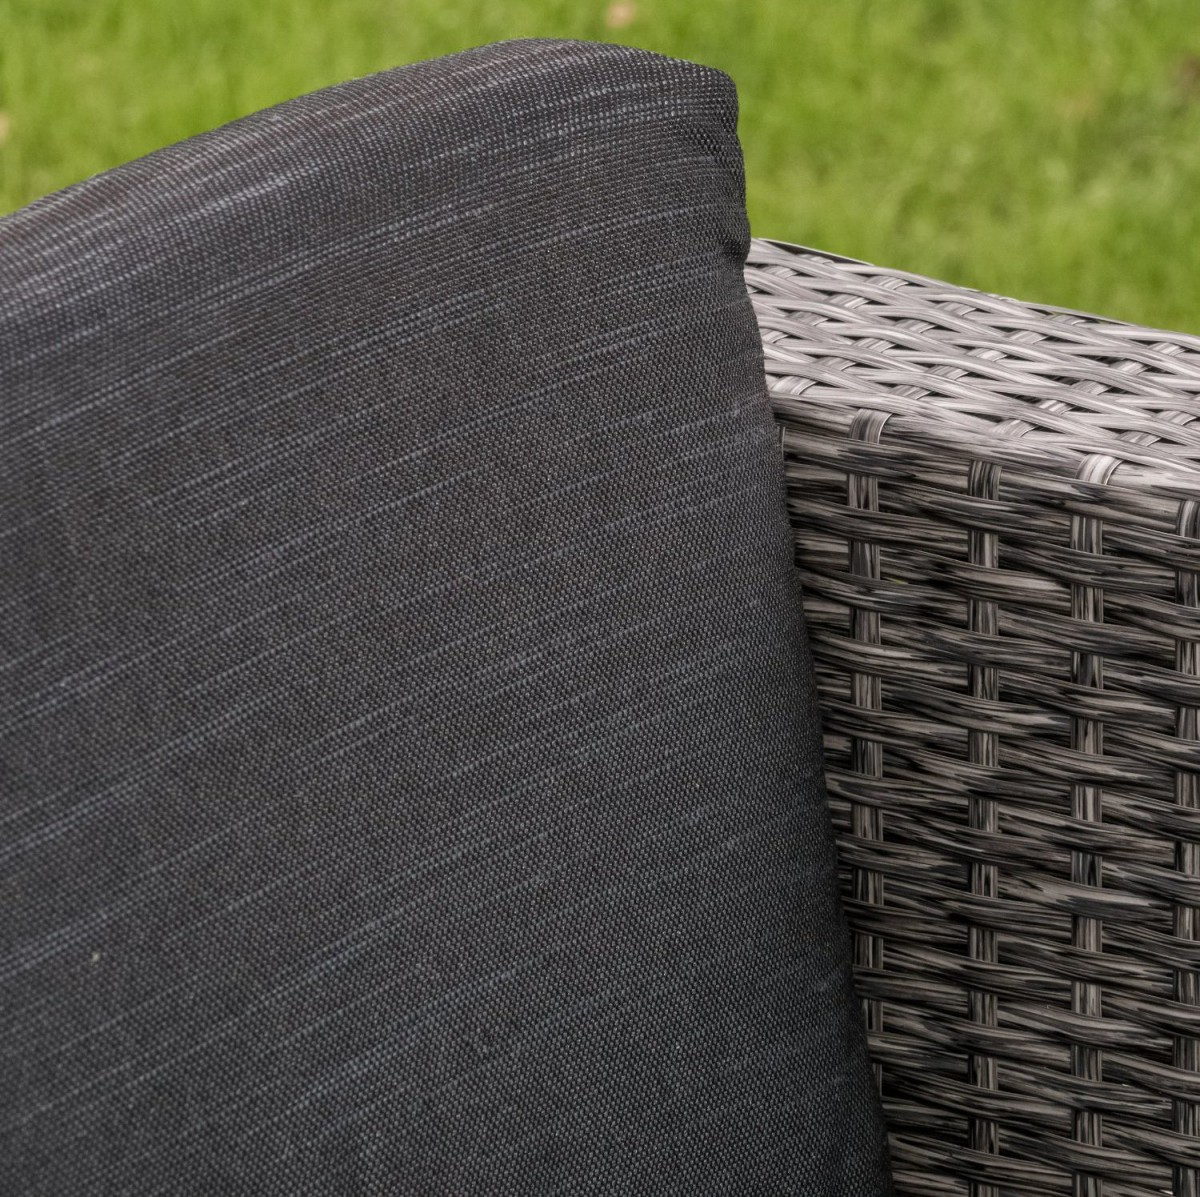 Venice 4 Piece Grey/Black Wicker Outdoor Sectional Sofa Set